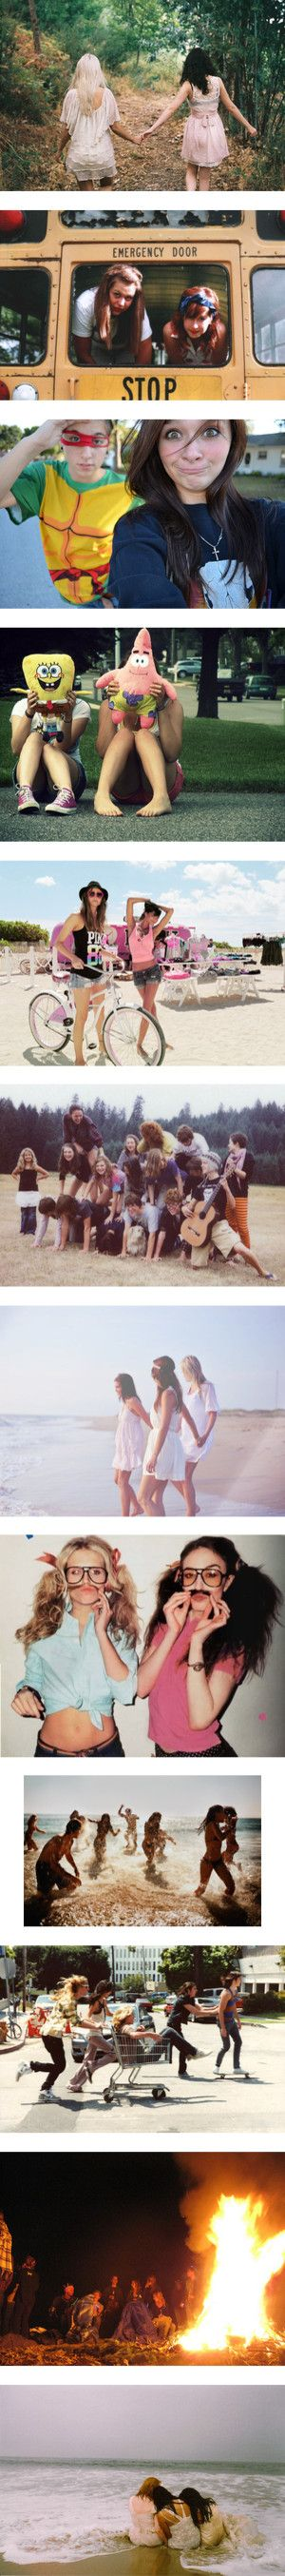 """""""More pictures to recreate c:"""" by the-polyvore-tipgirls ❤ liked on Polyvore"""